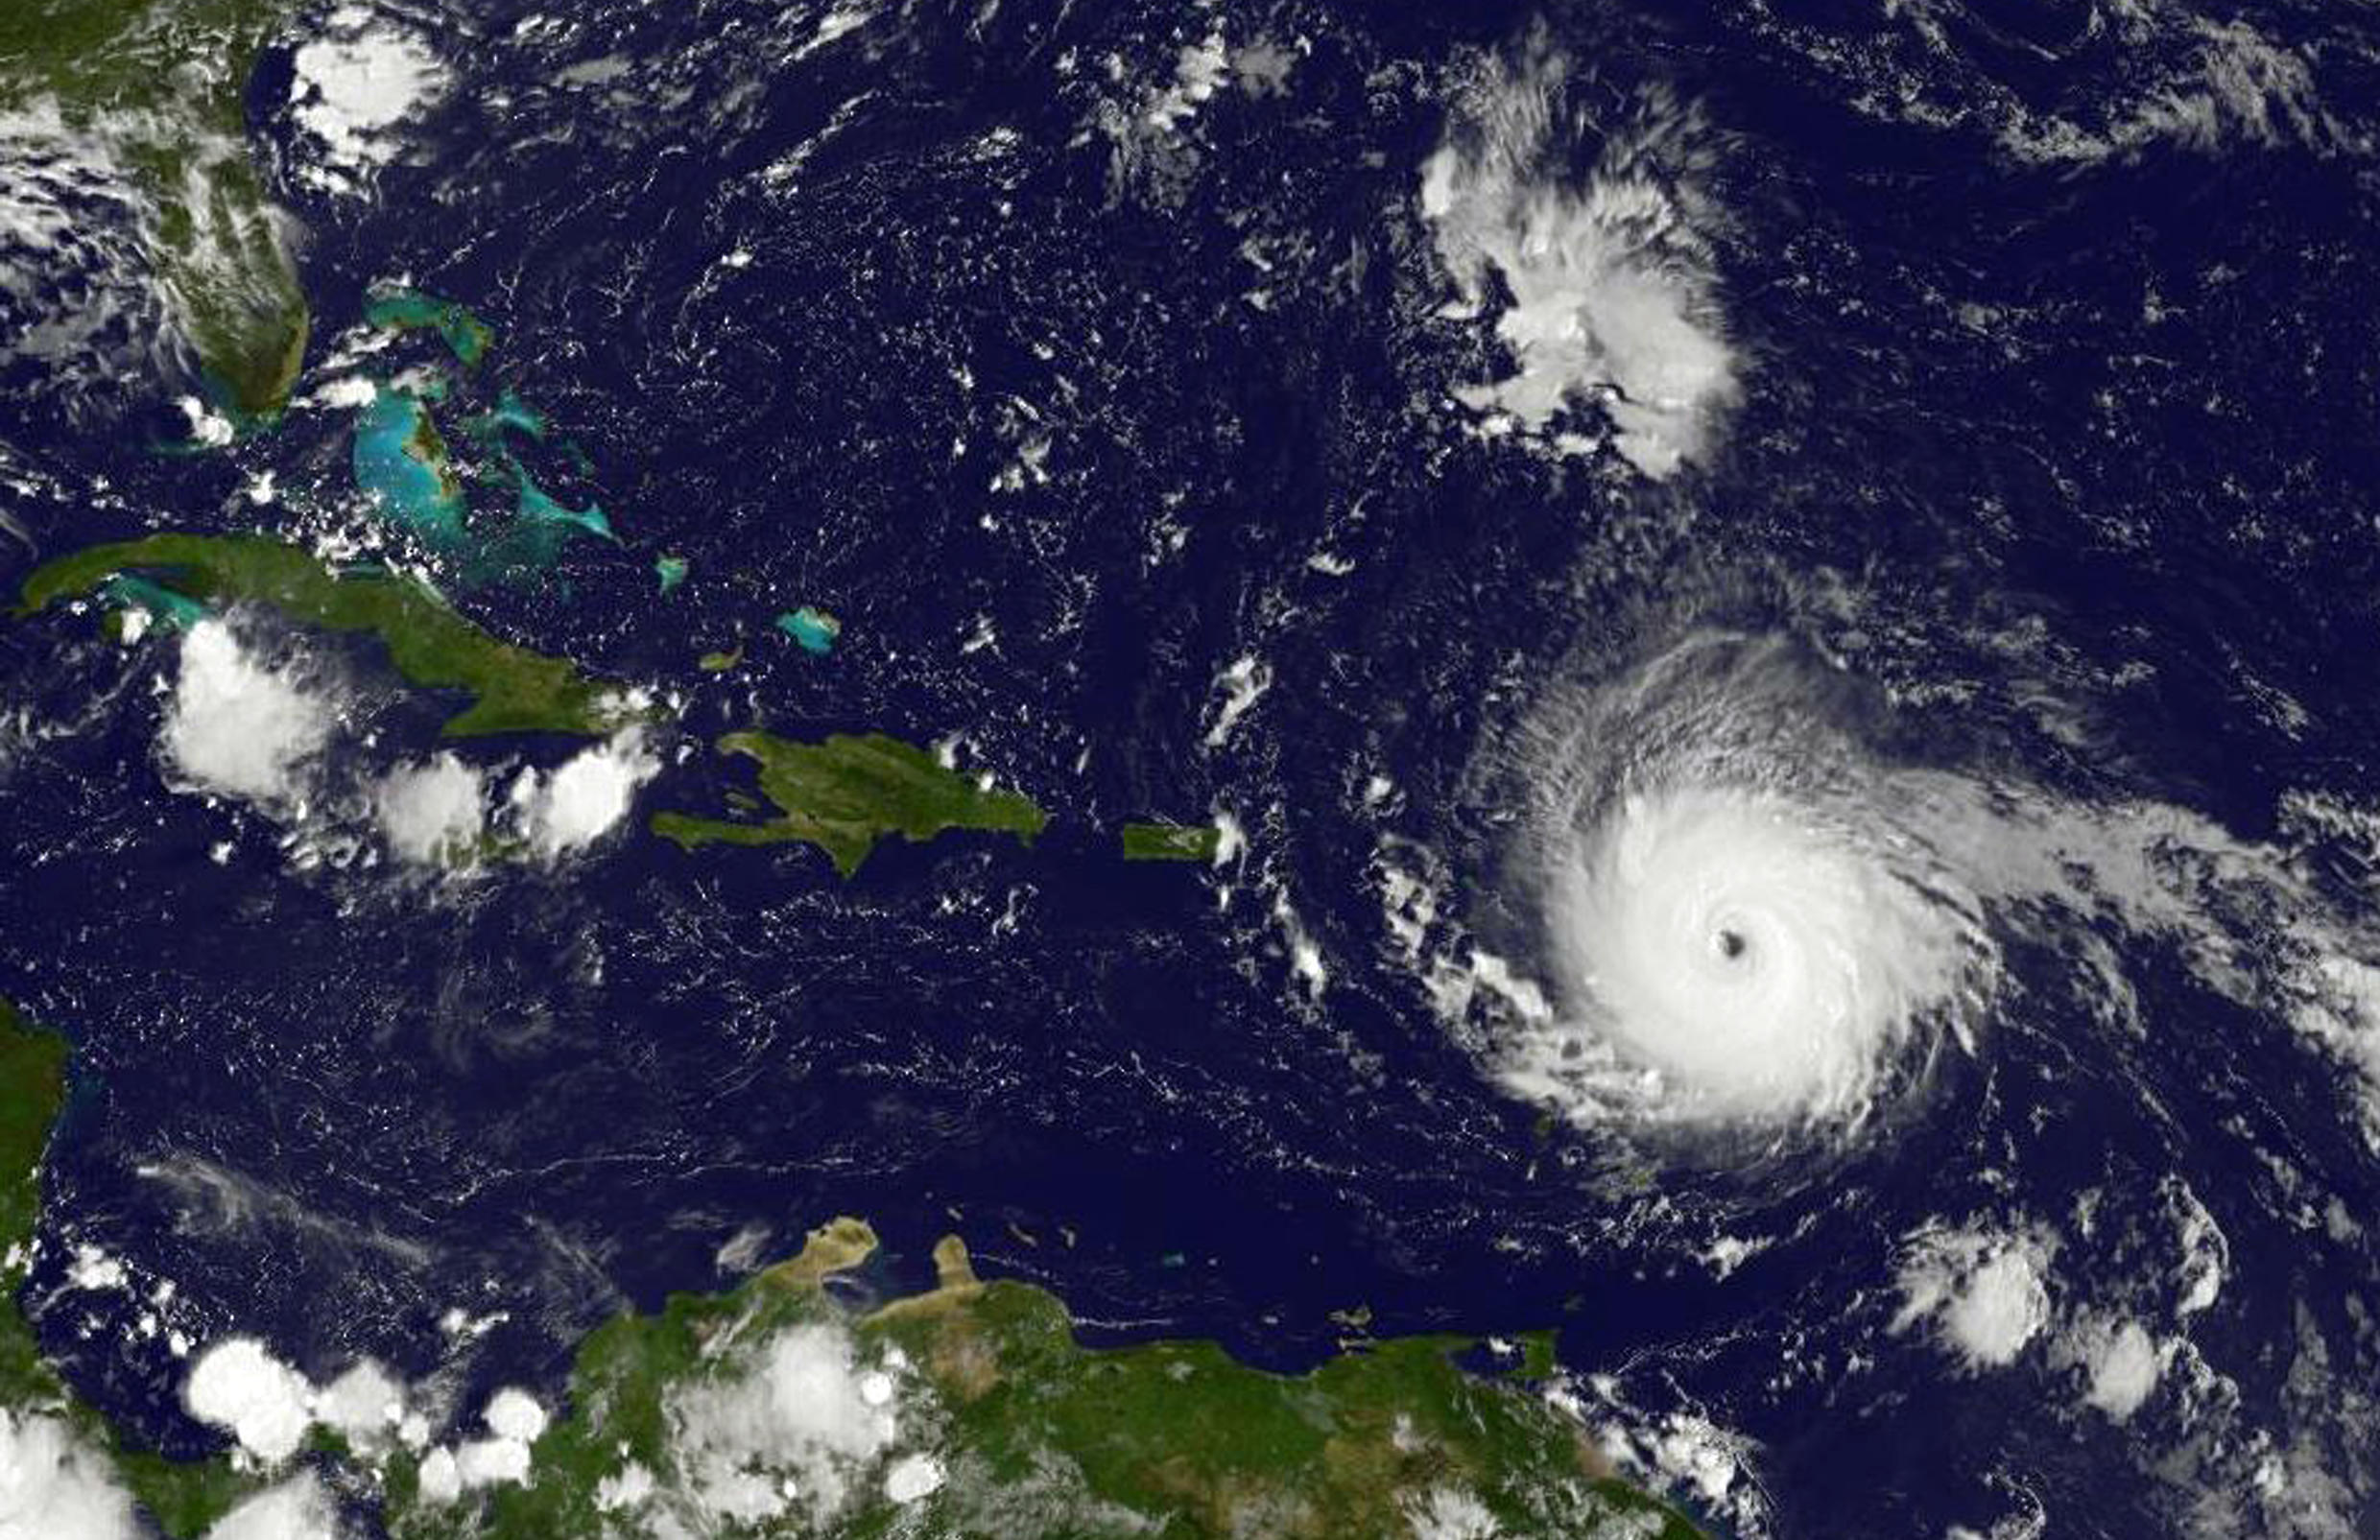 This image obtained from NASA's GOES Project shows Hurricane Irma on September 5, 2017,